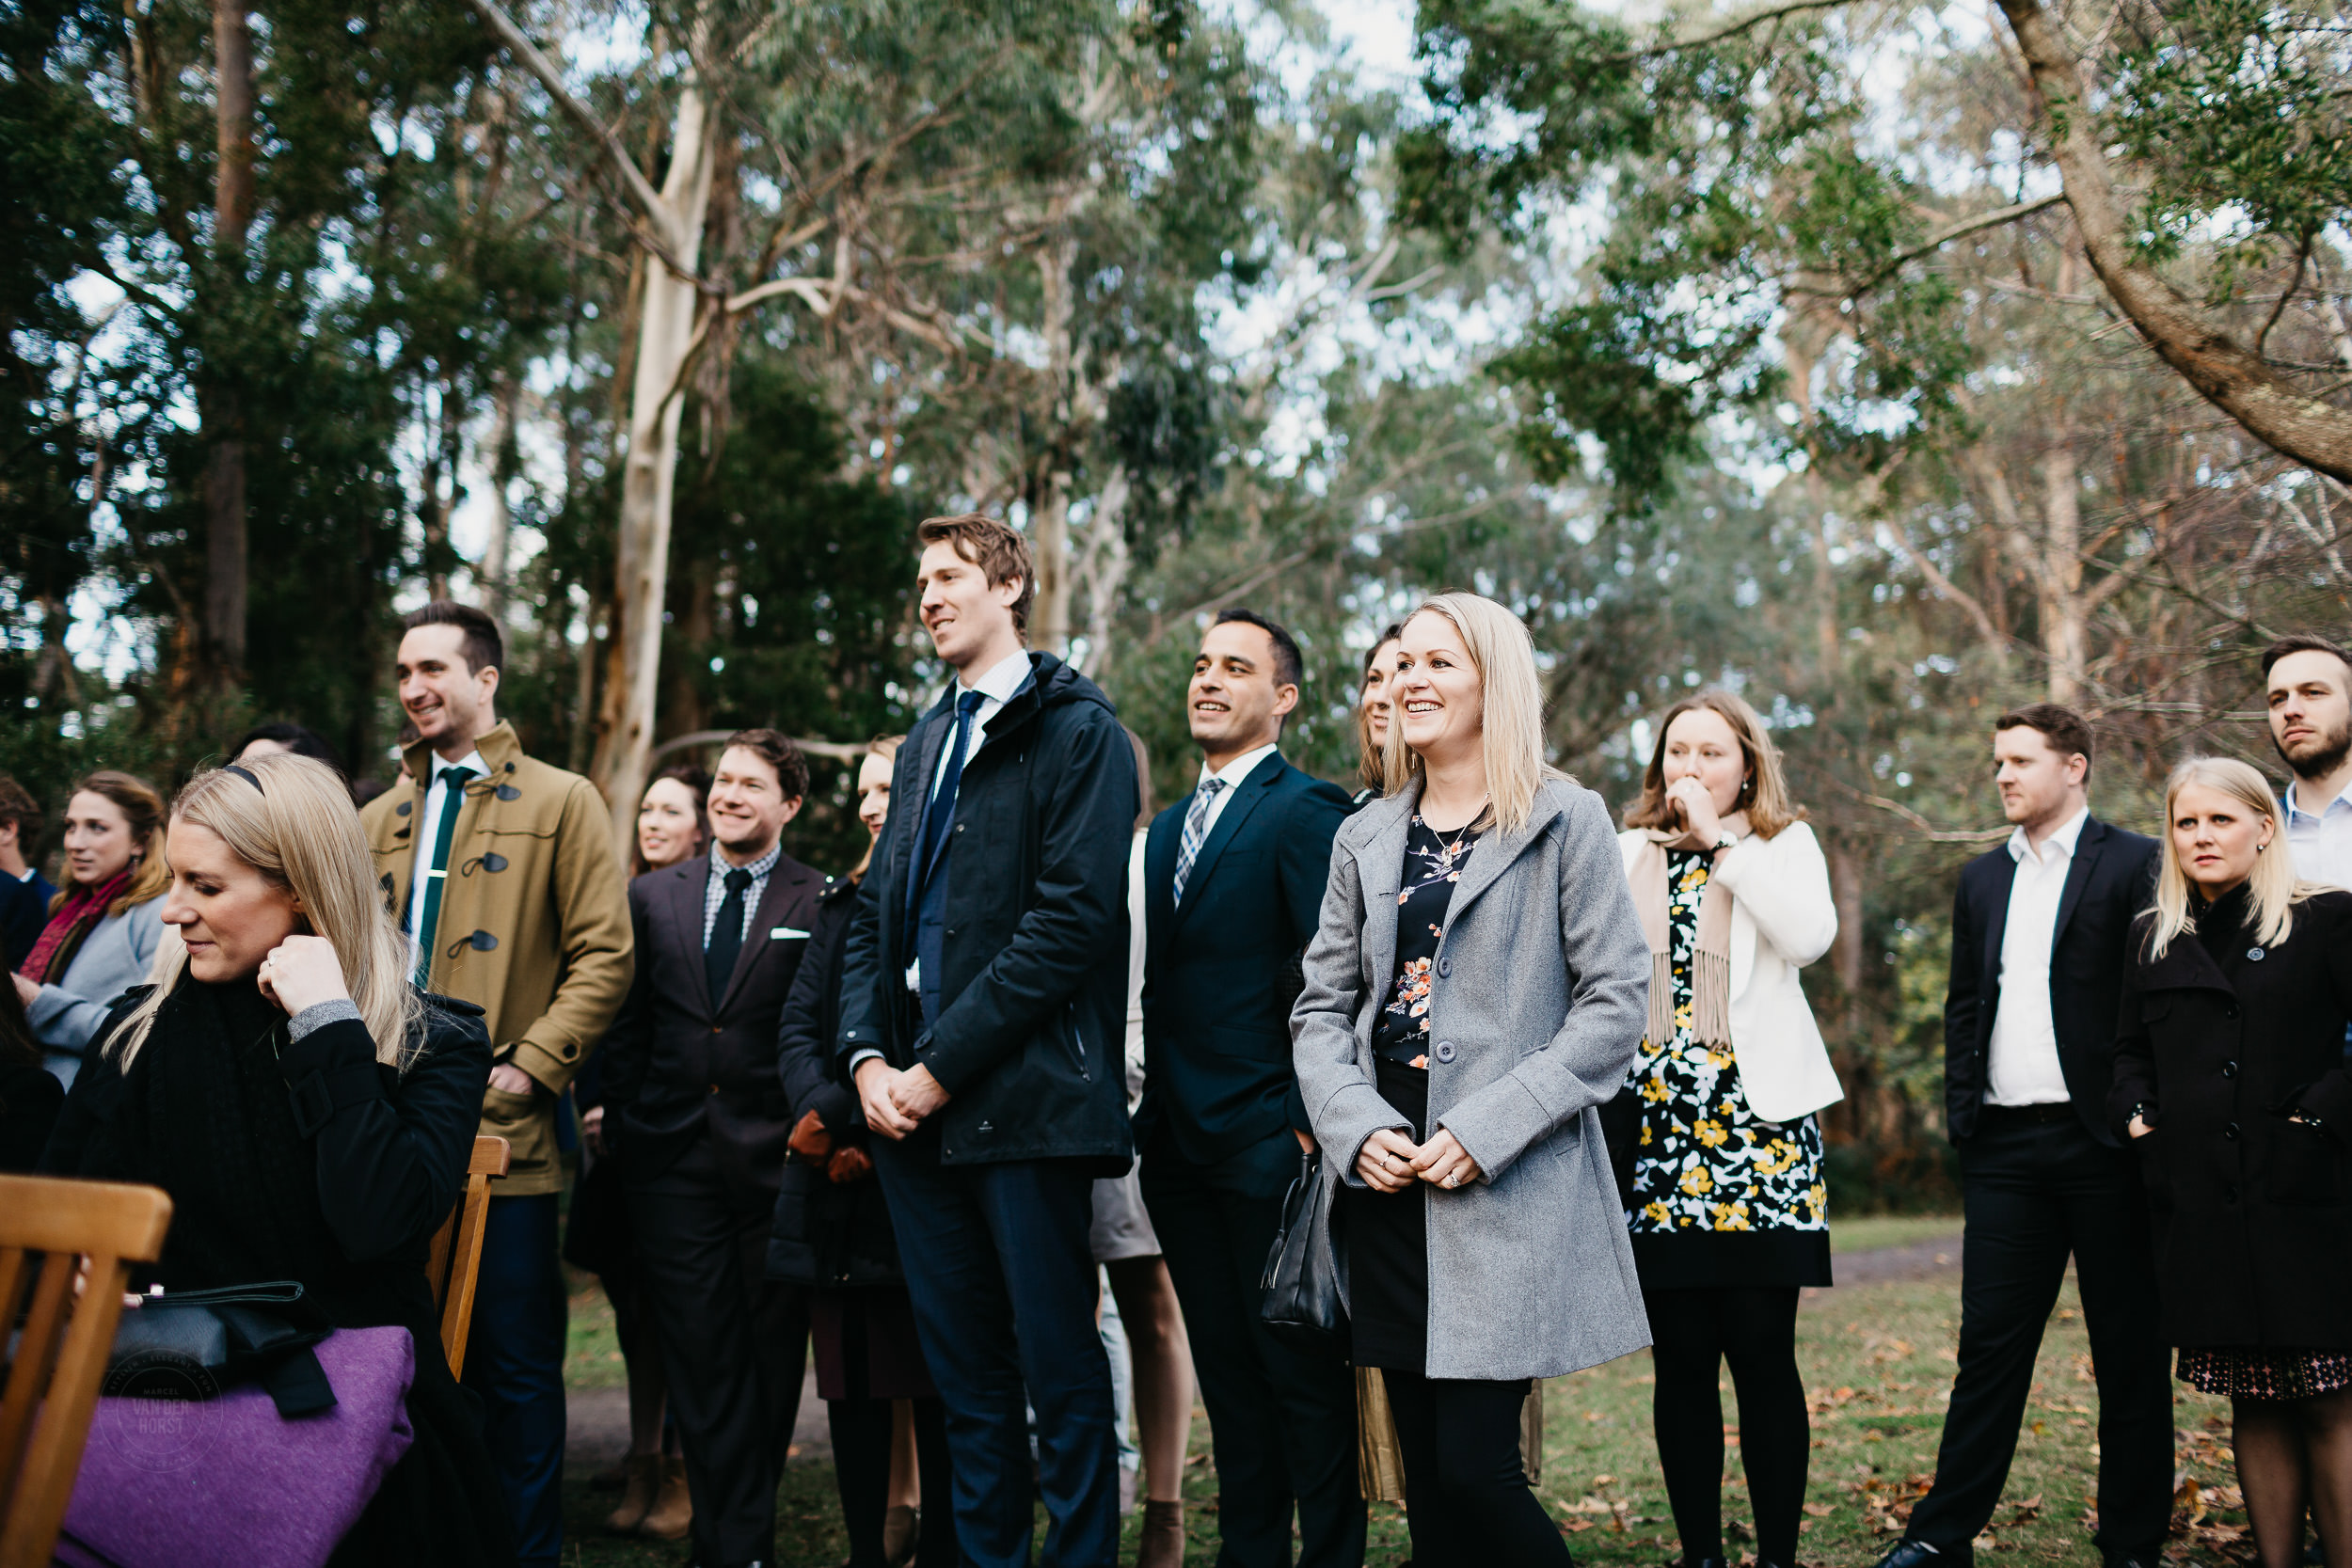 Melbourne-Wedding-Photographer-1057.jpg